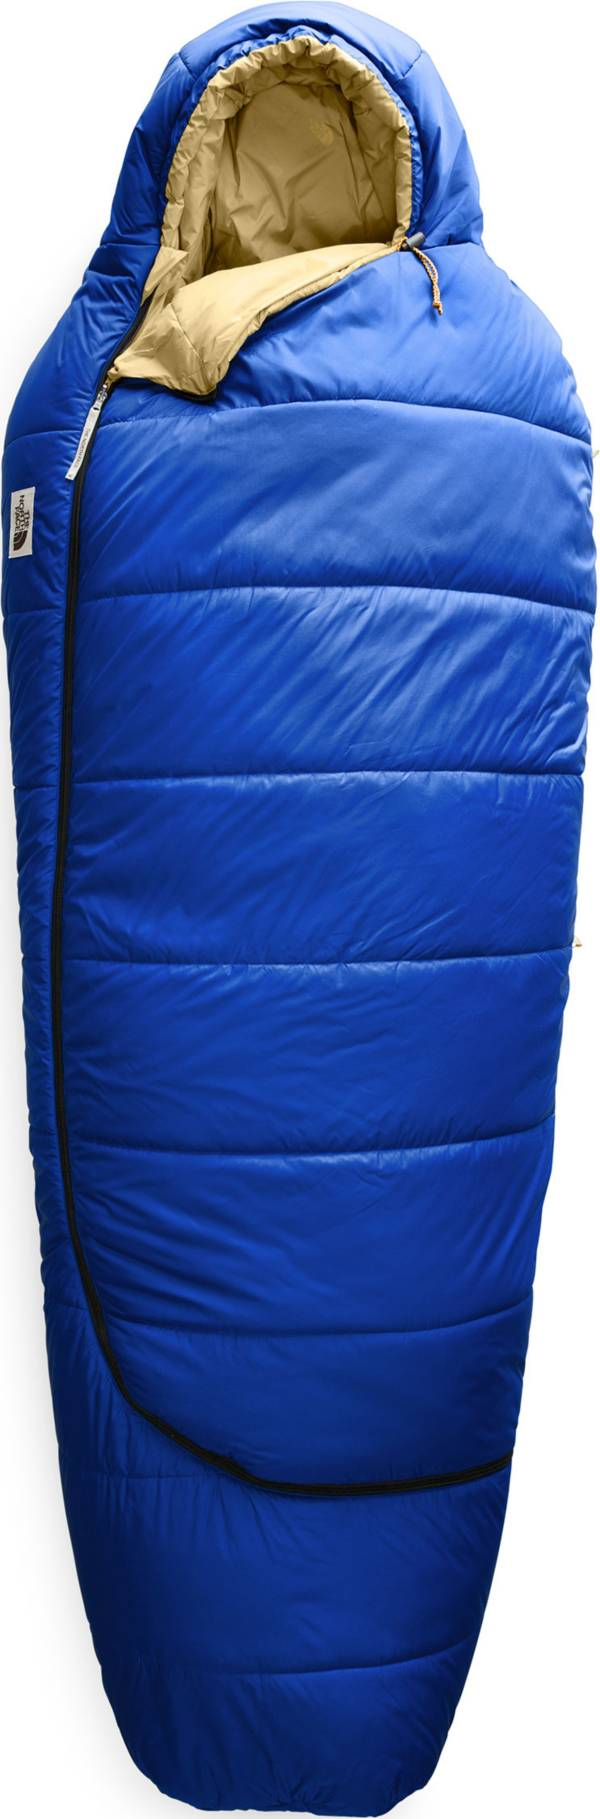 The North Face Eco Trail Synthetic 20 Sleeping Bag product image